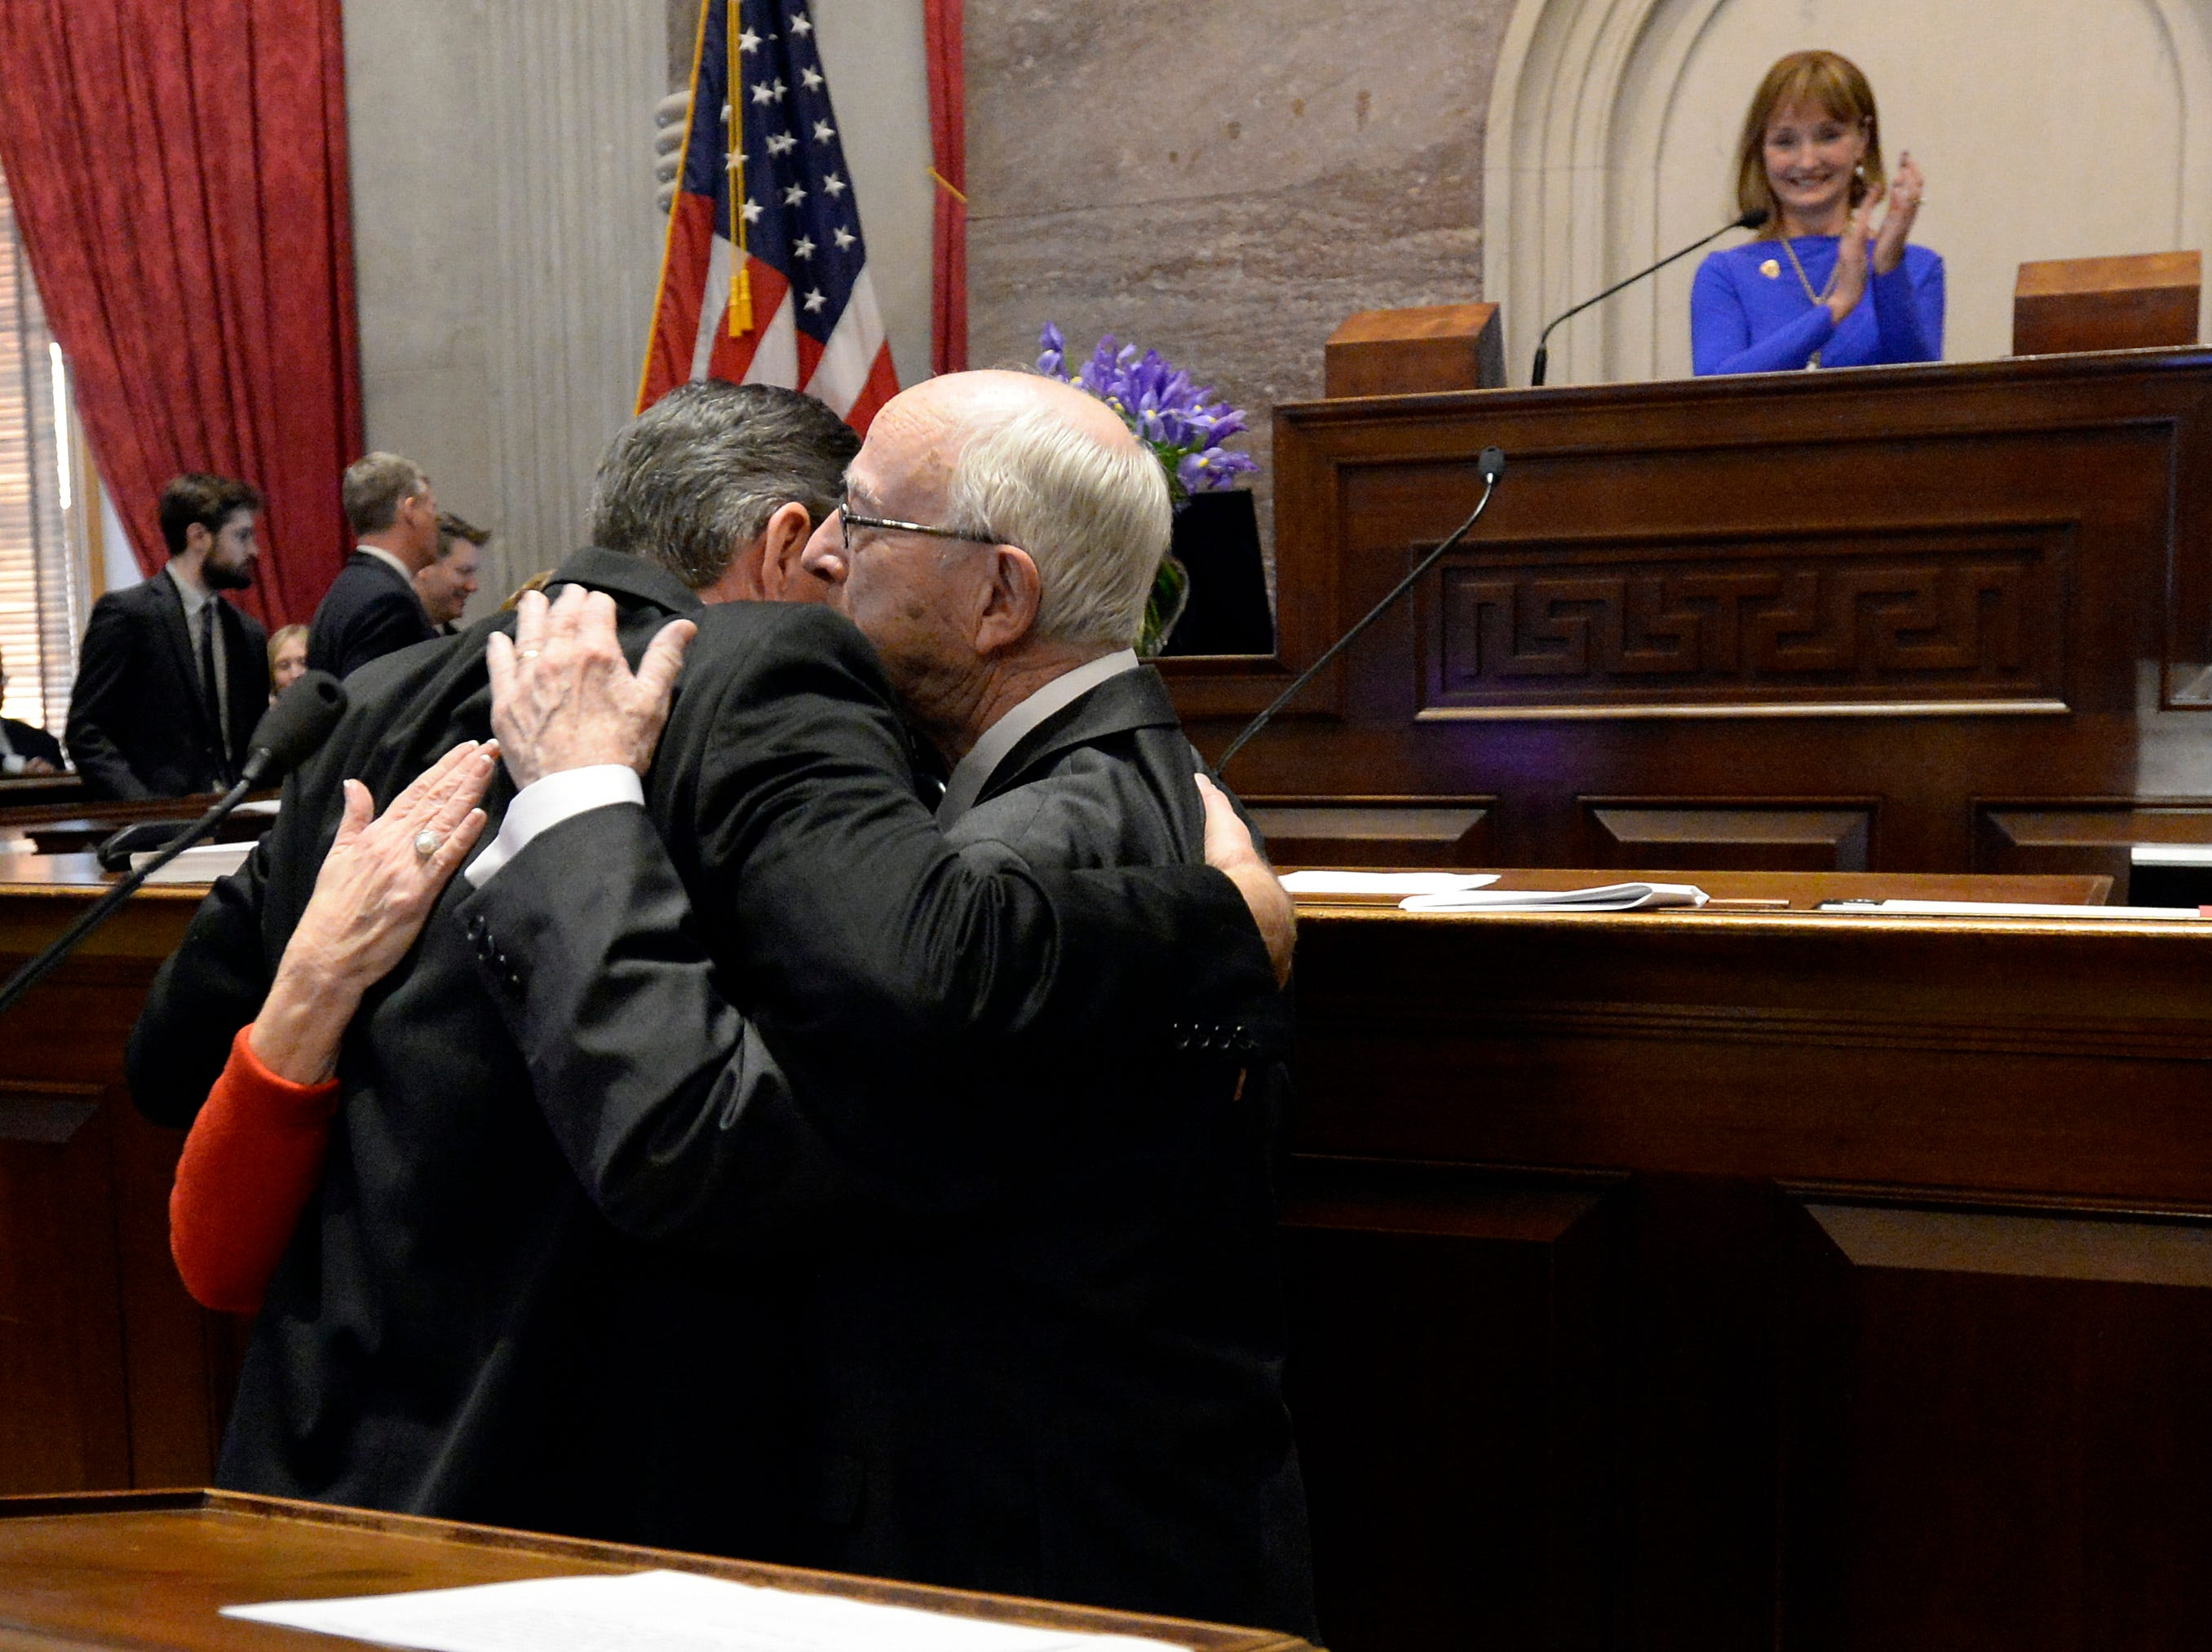 Newly elected House Speaker Glen Casada, R-Franklin, hugs his parents Karen, left, Dick, after being sworn in by Tennessee Supreme Court Chief Justice Jeff Bivins on the opening day of the 111th General Assembly Tuesday, Jan. 8, 2019, in Nashville, Tenn.